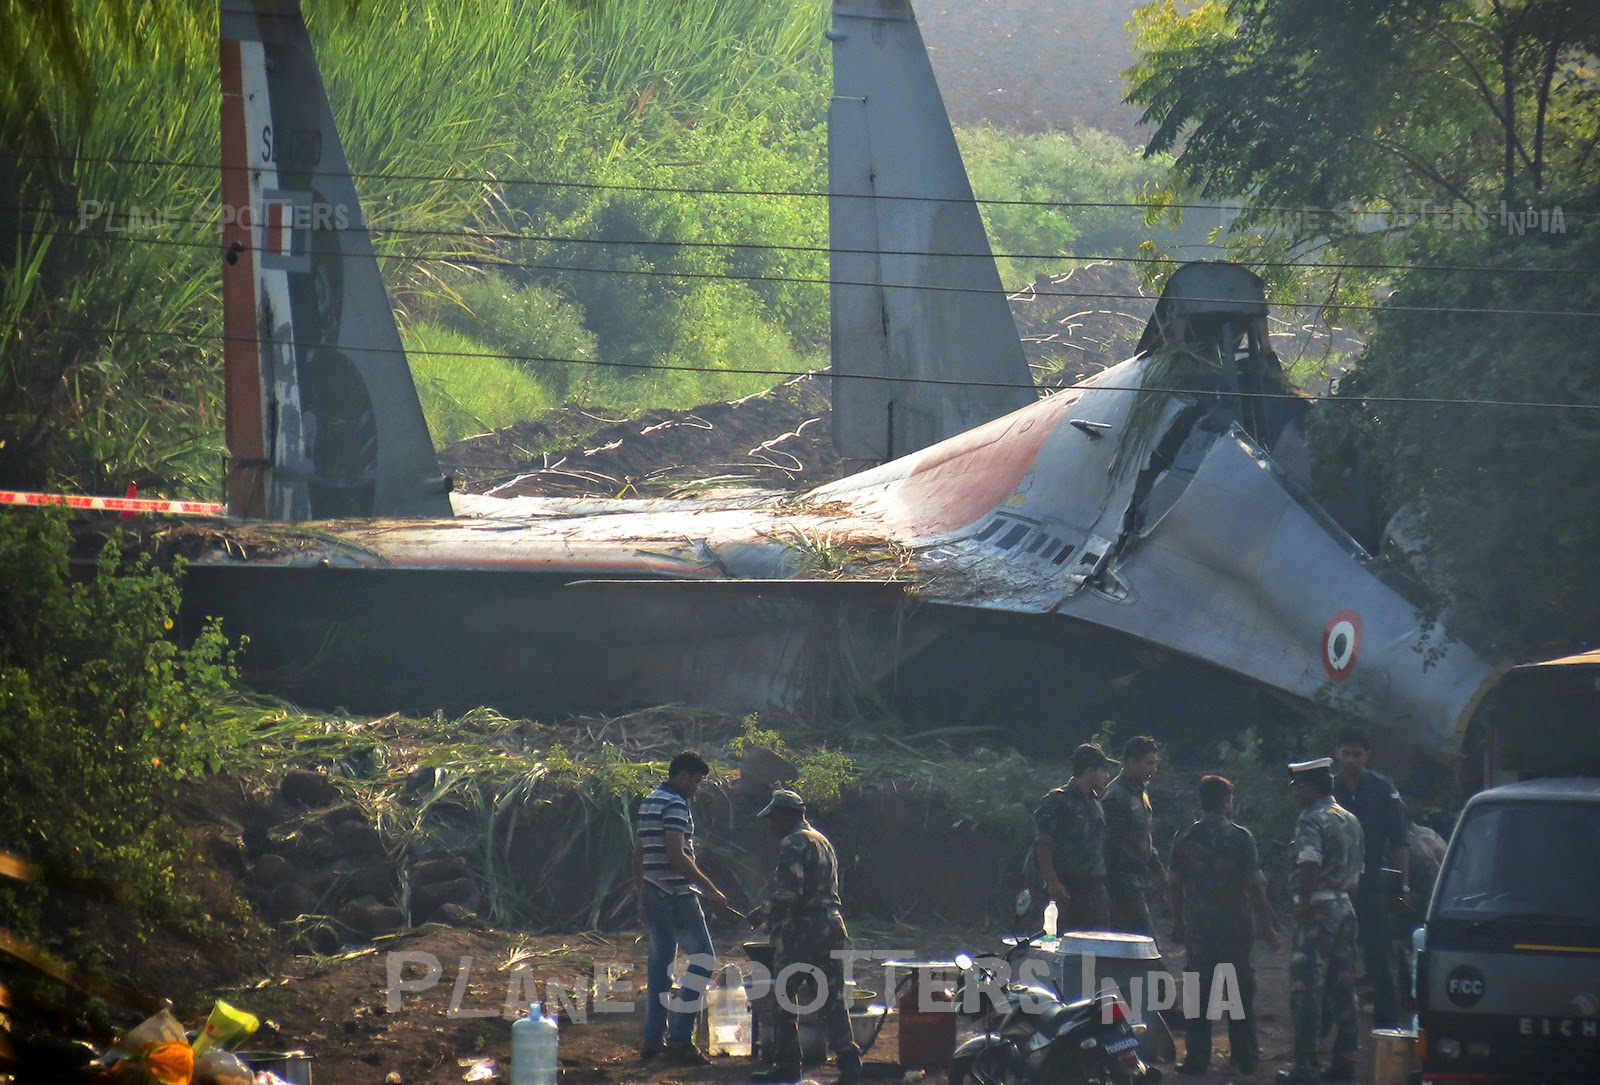 Pilot Near Me >> Indian Air Force SU30 Crashed Near Pune - SB050 | Plane Spotters India - PlaneSpotters.in ...